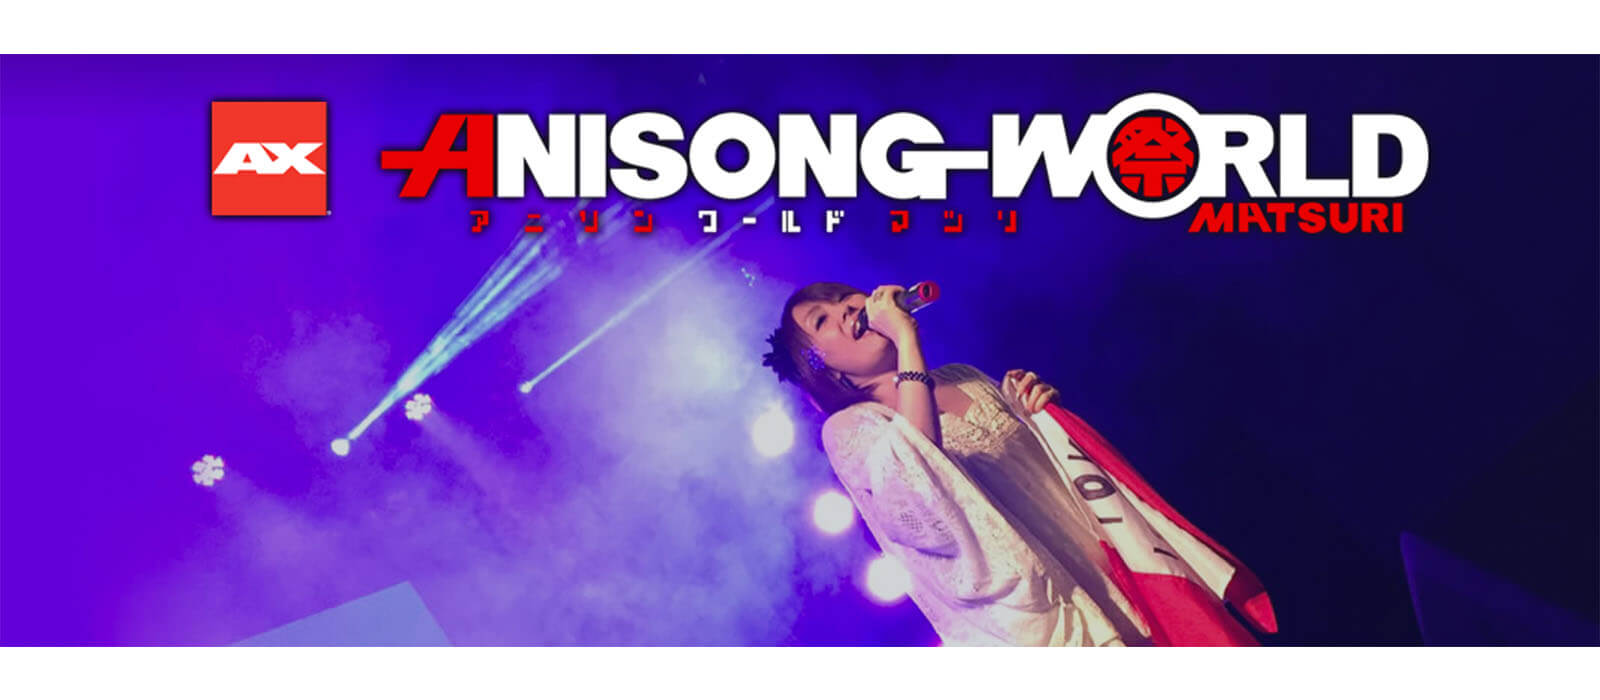 Anisong World Matsuri at Anime Expo